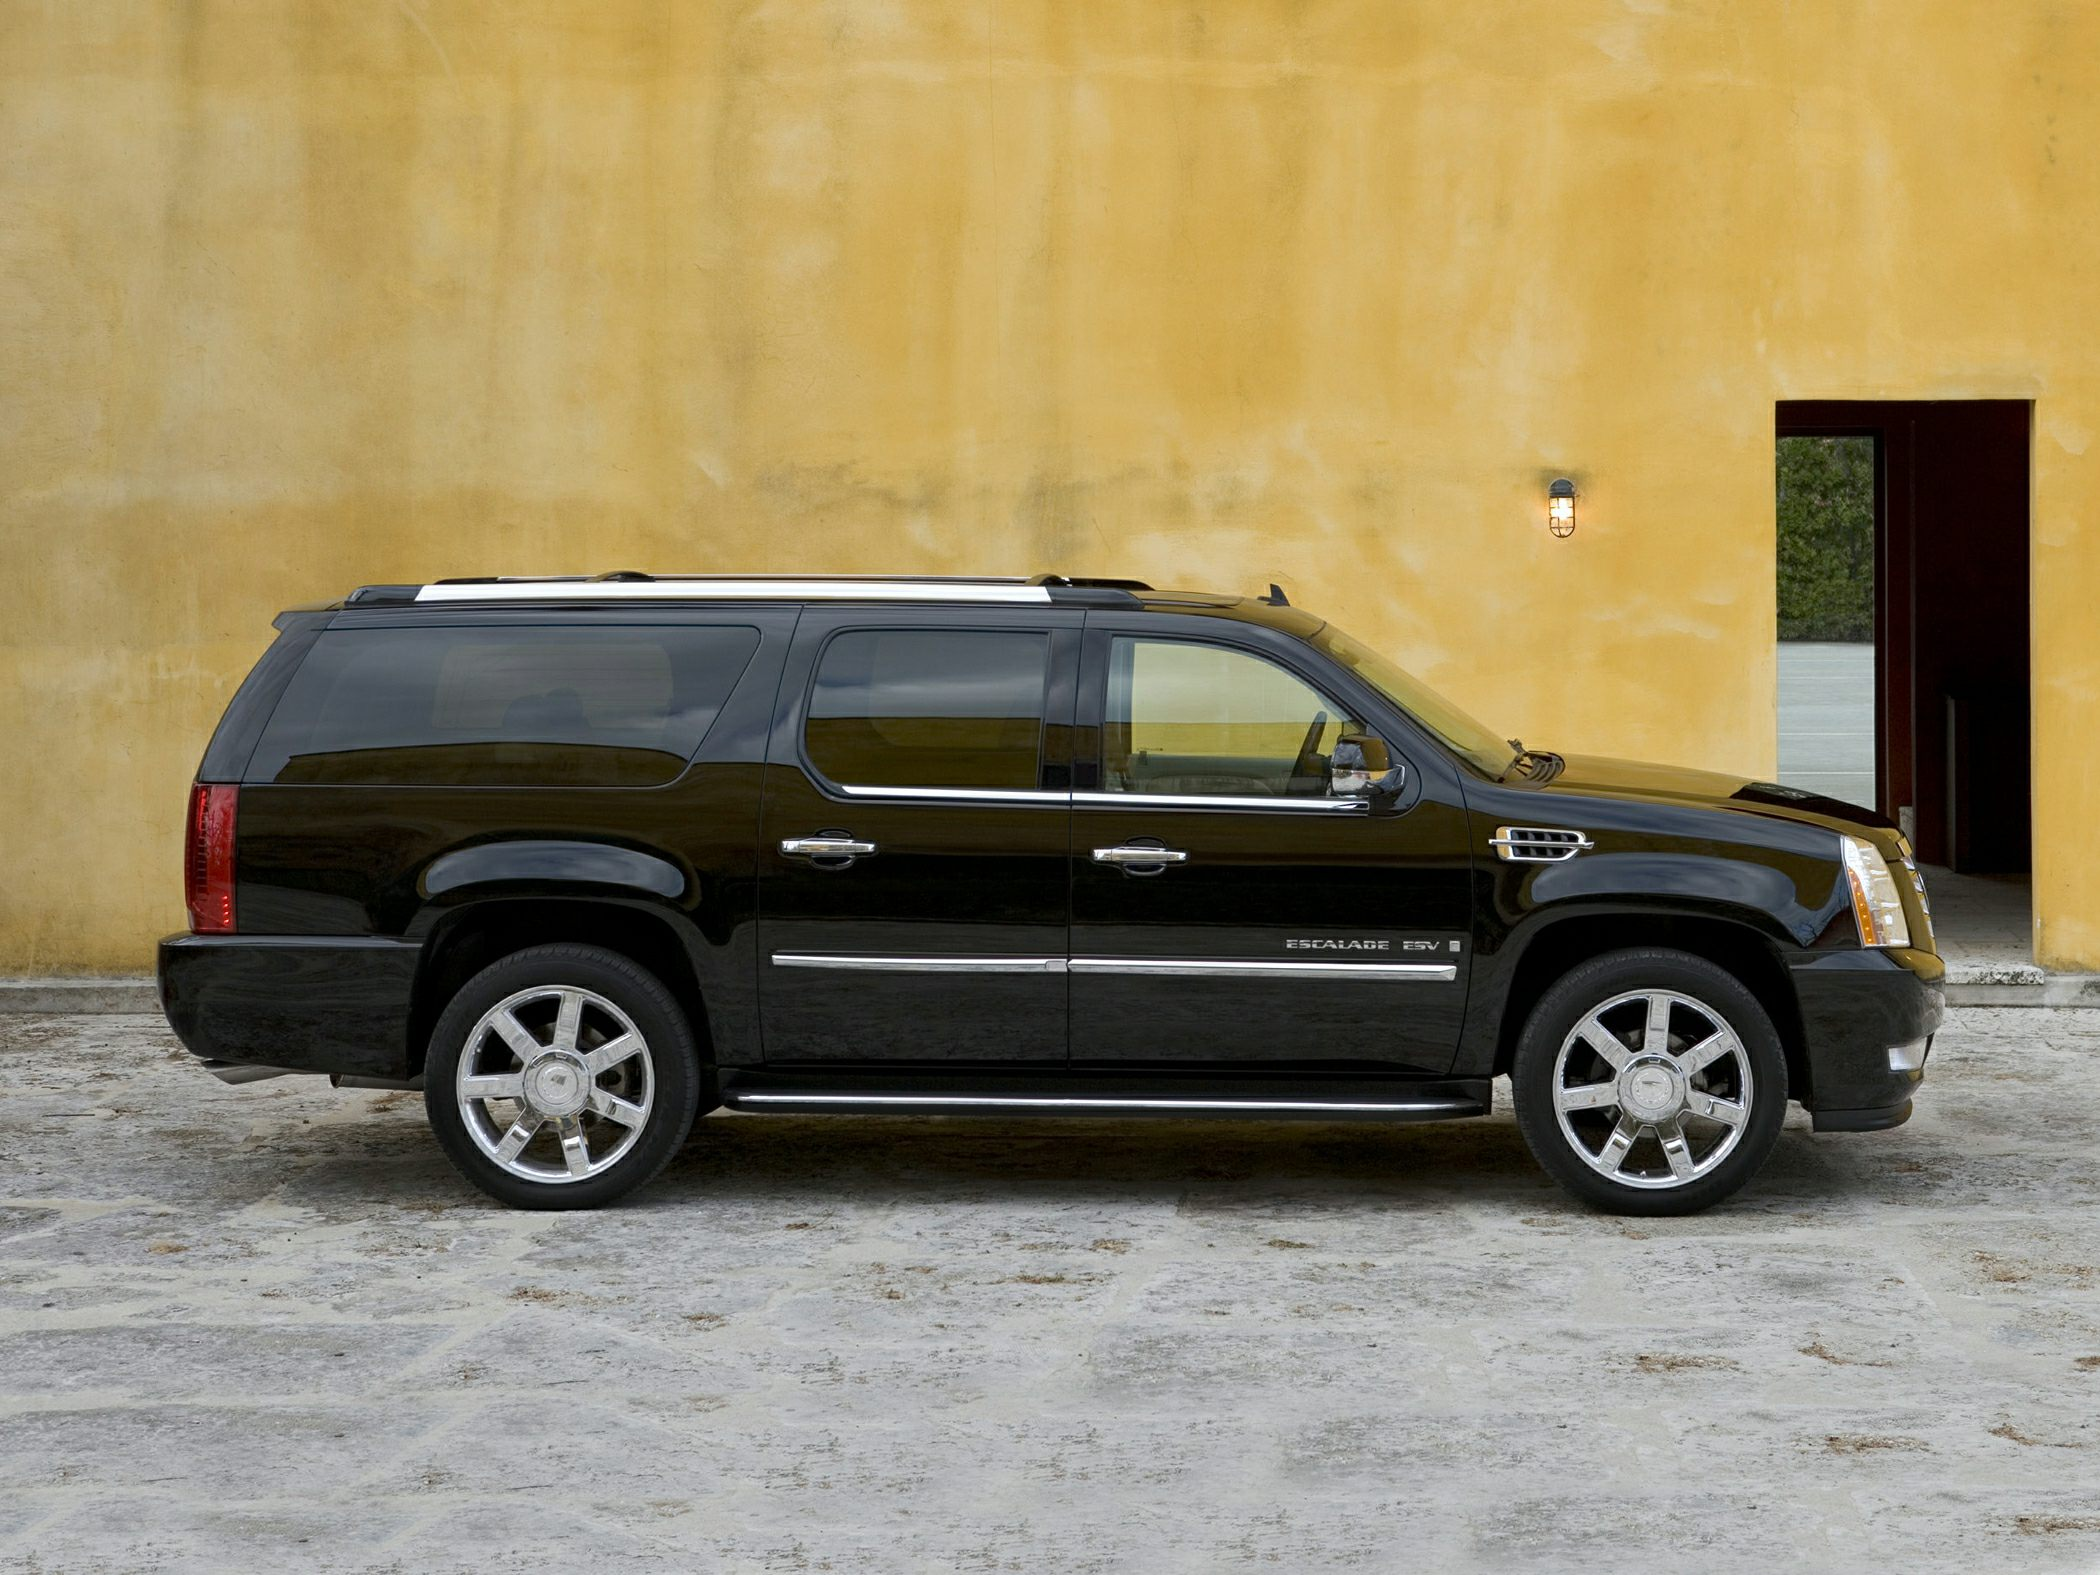 2014 Cadillac Escalade esv – pictures, information and specs